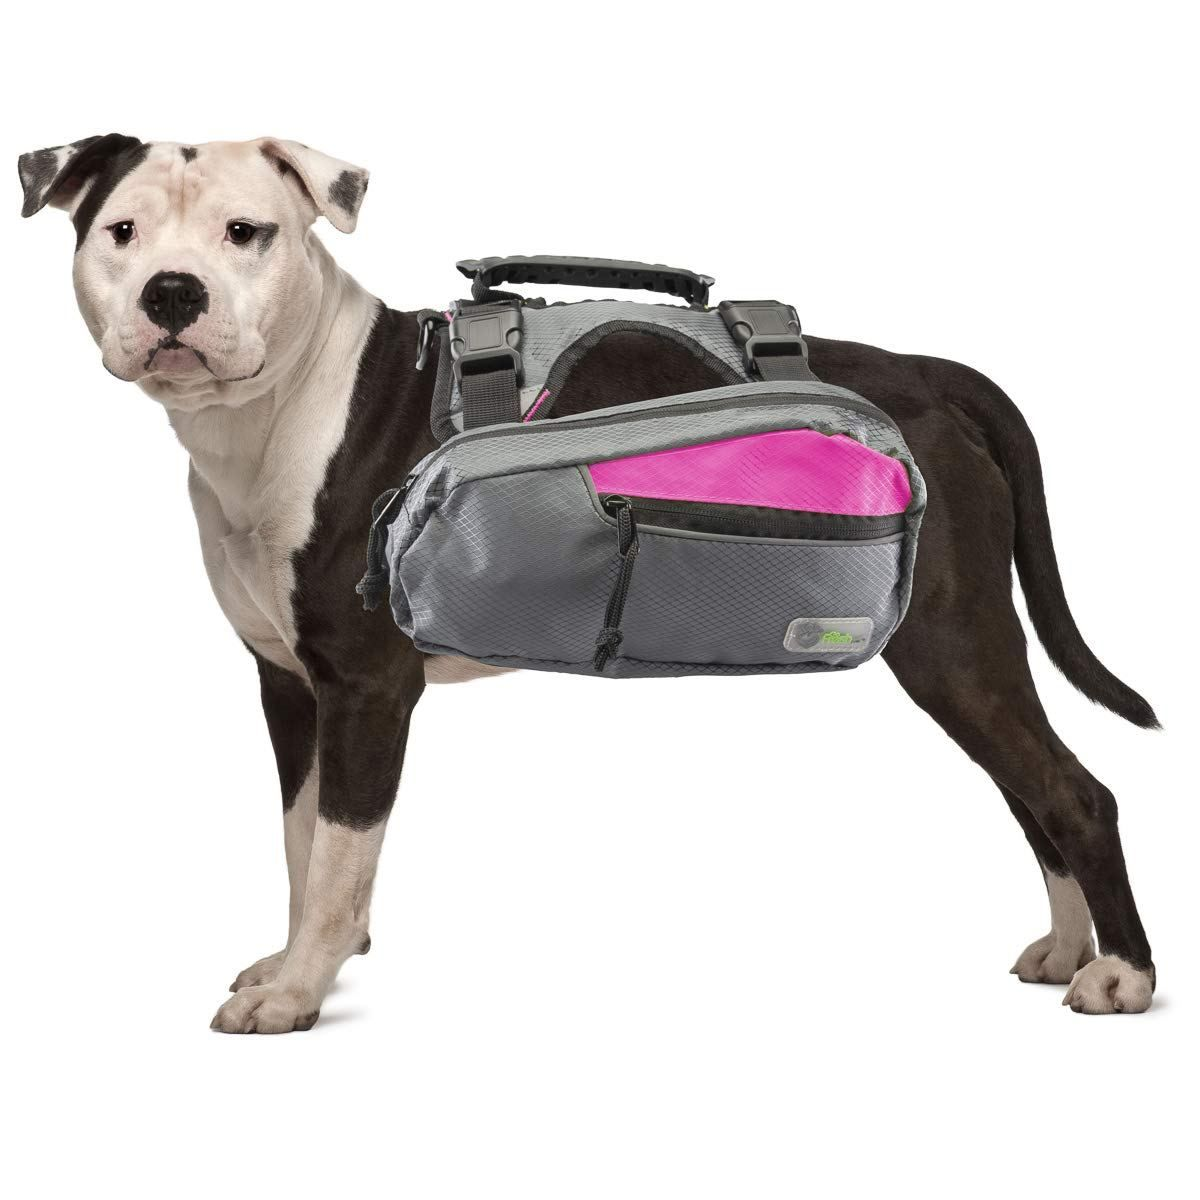 Boughtagain Awesome Goods You Bought It Again Hiking Dogs Dog Backpack Pet Backpack